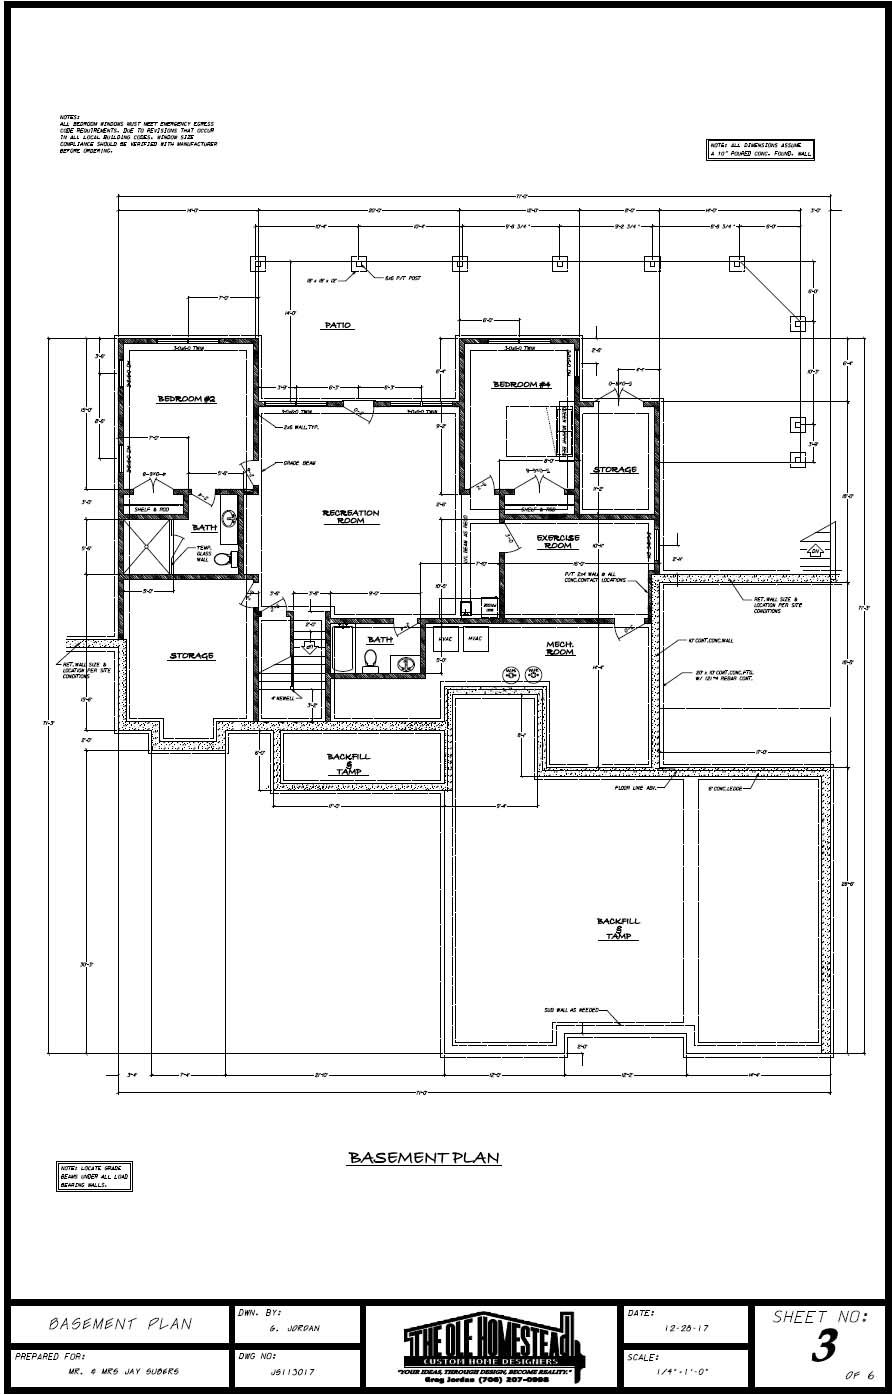 Lake Hartwell Dream Home - Basement Plan